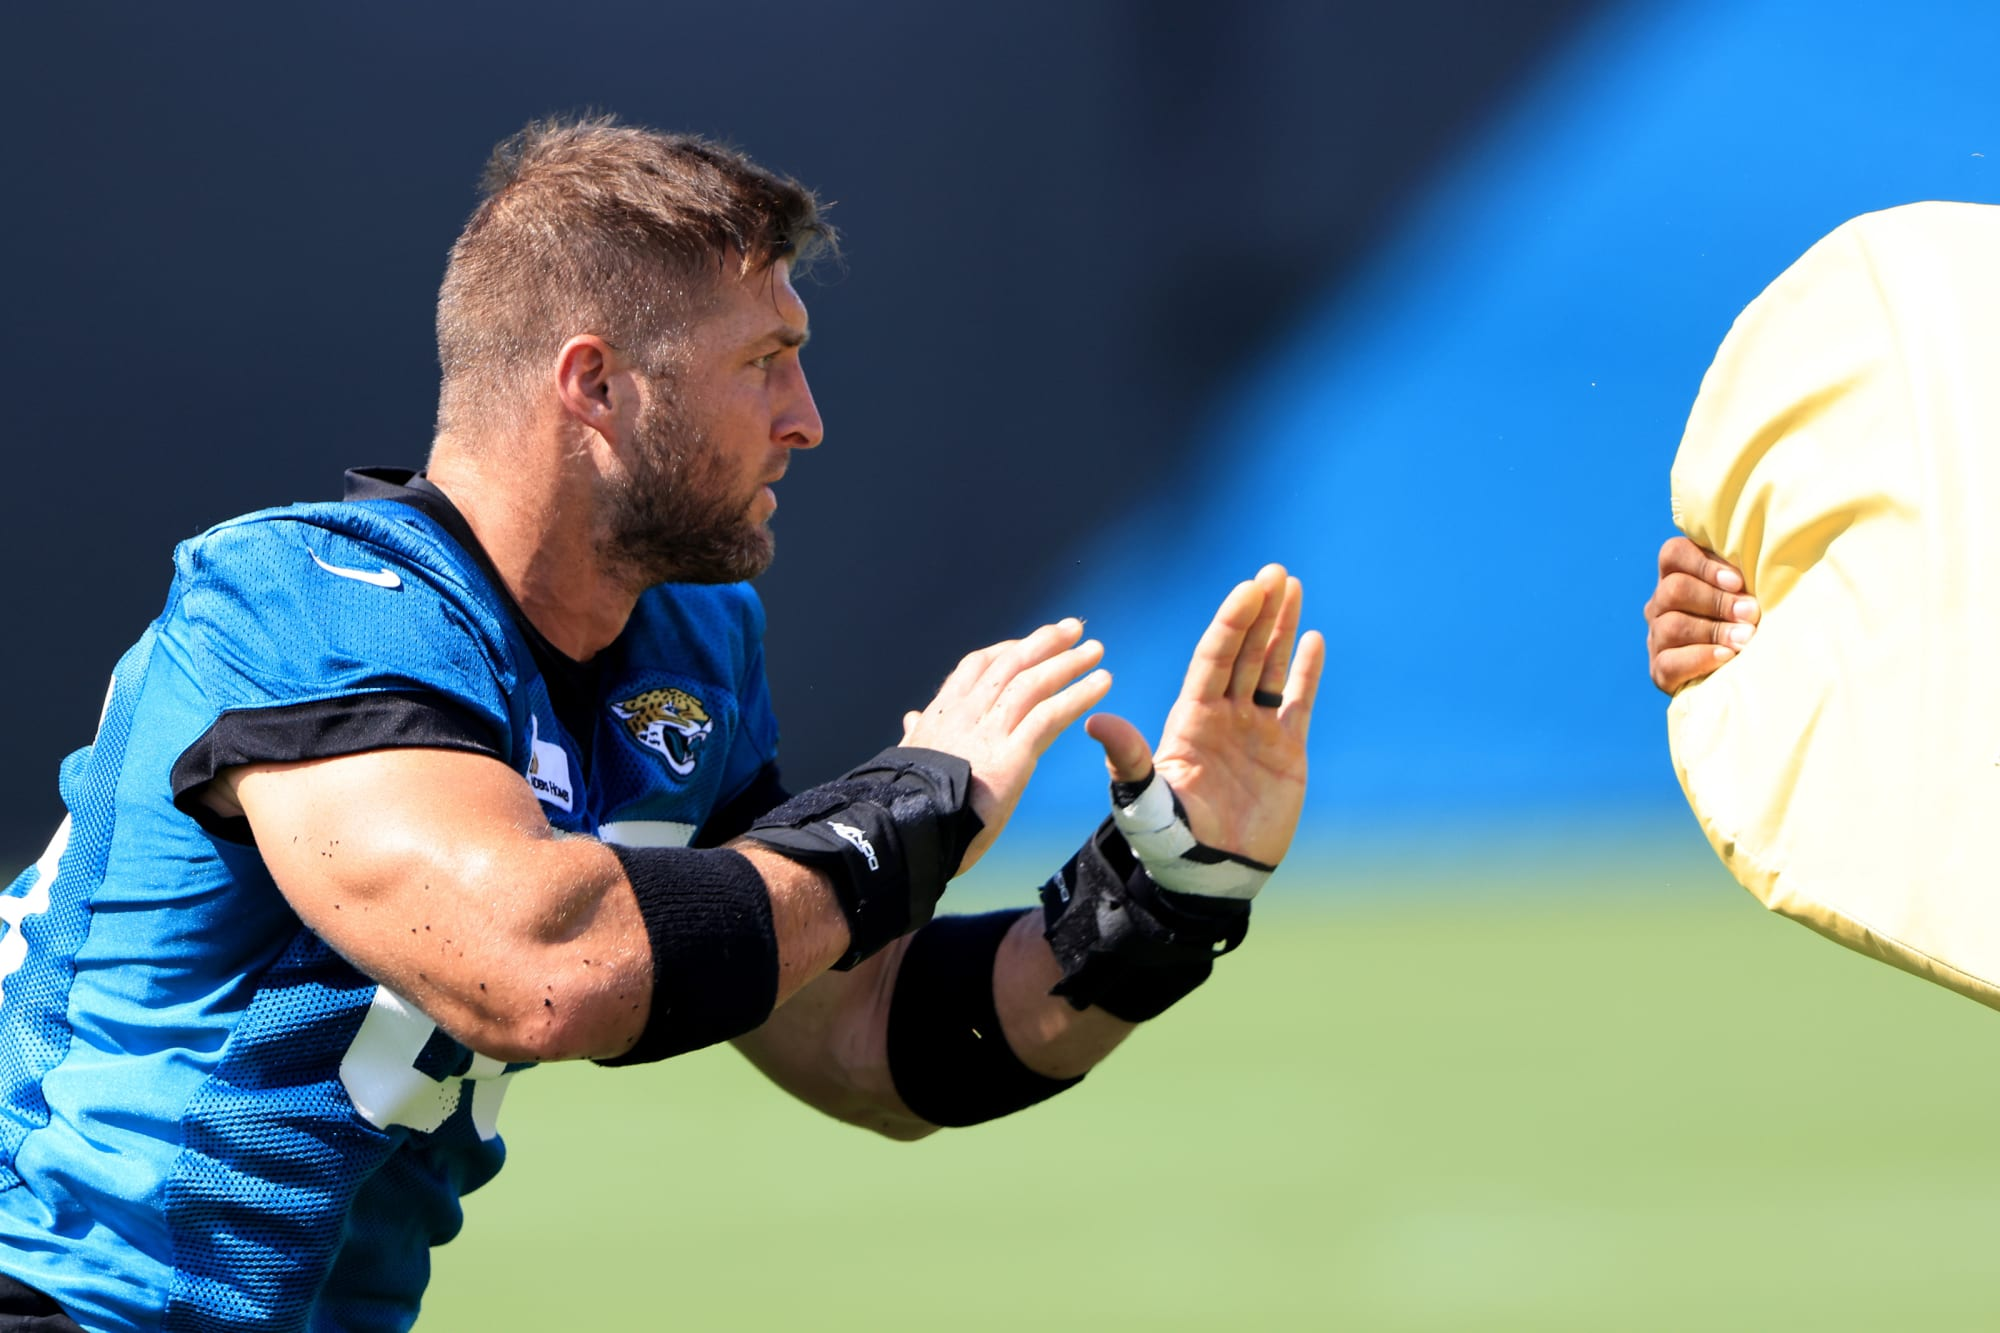 Former Texas football HC Charlie Strong lauds Tim Tebow in camp